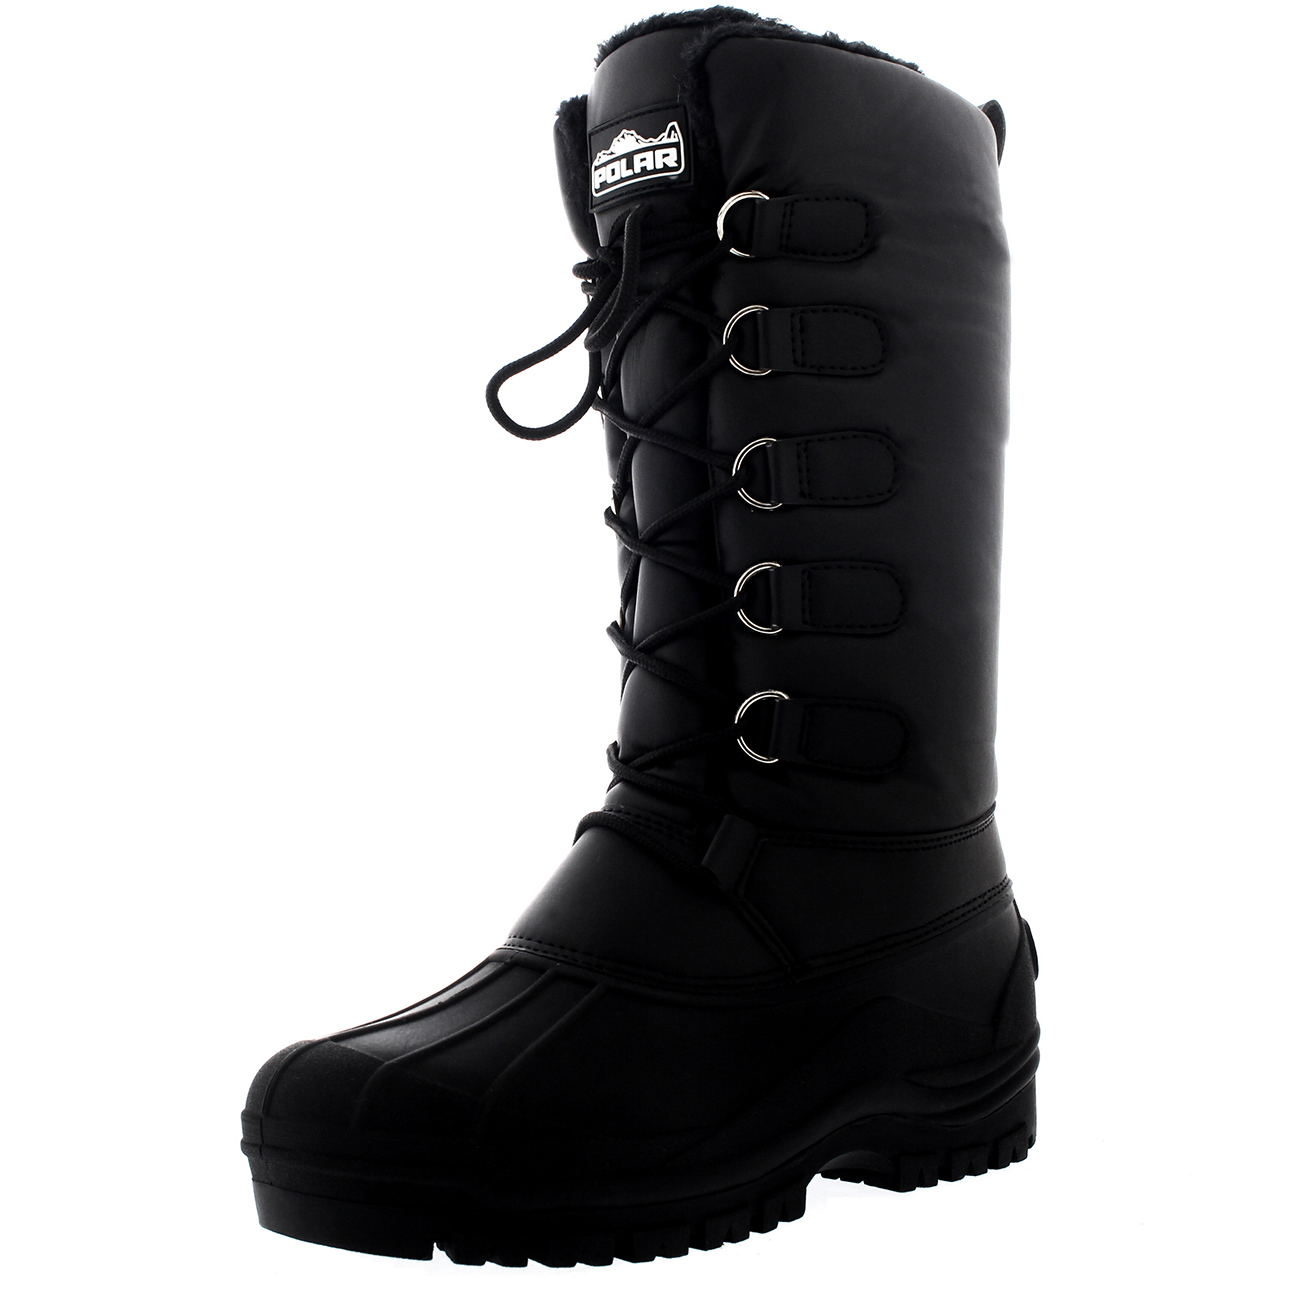 Ladies-Quilted-Duck-Hiker-Walking-Waterproof-Winter-Yard-Calf-Boots-All-Sizes